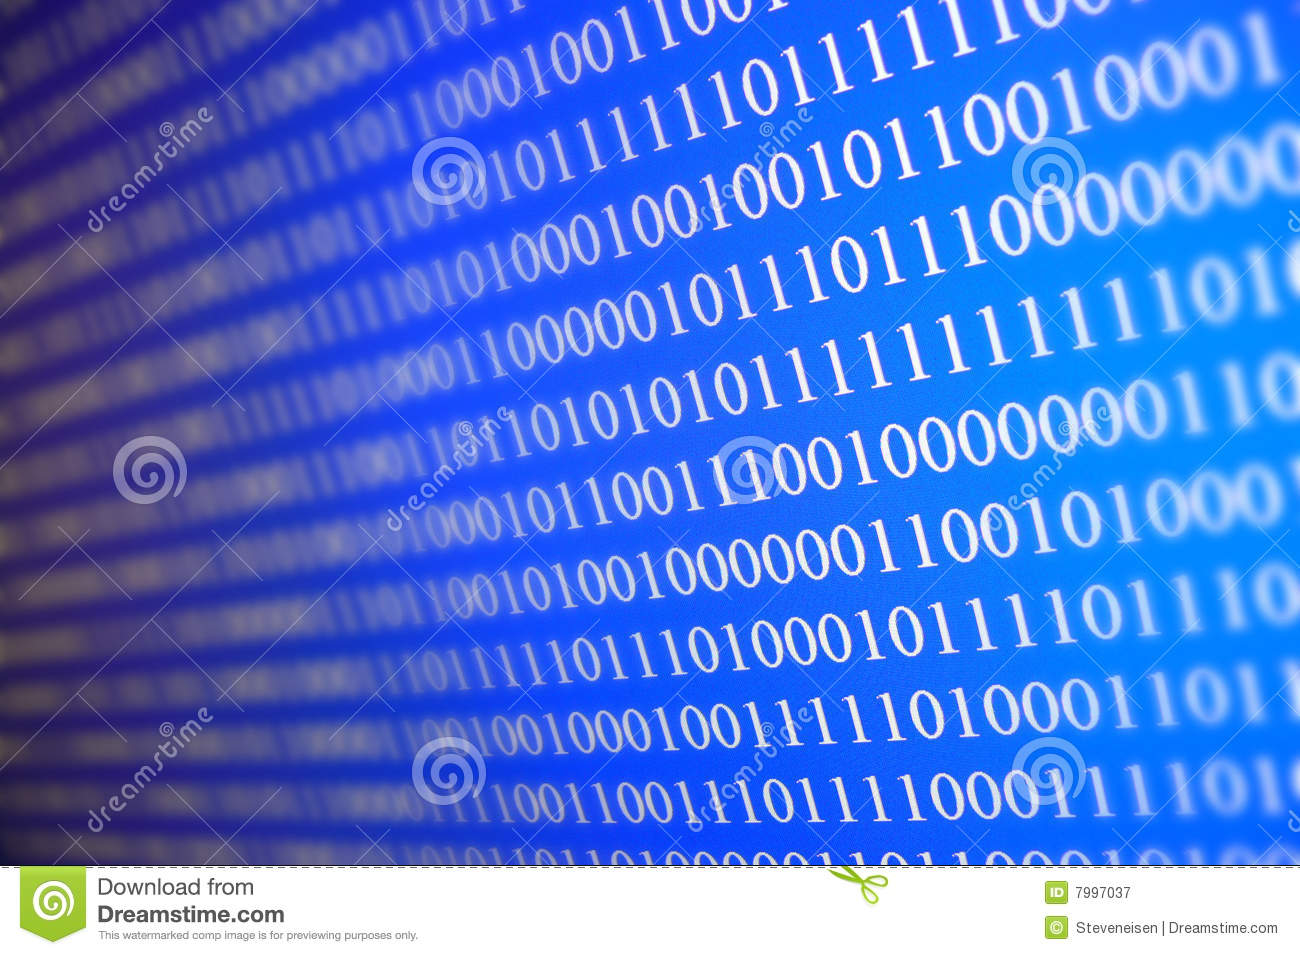 Unlimited Data Plans >> Data stock image. Image of networks, zeros, ones, monitor - 7997037